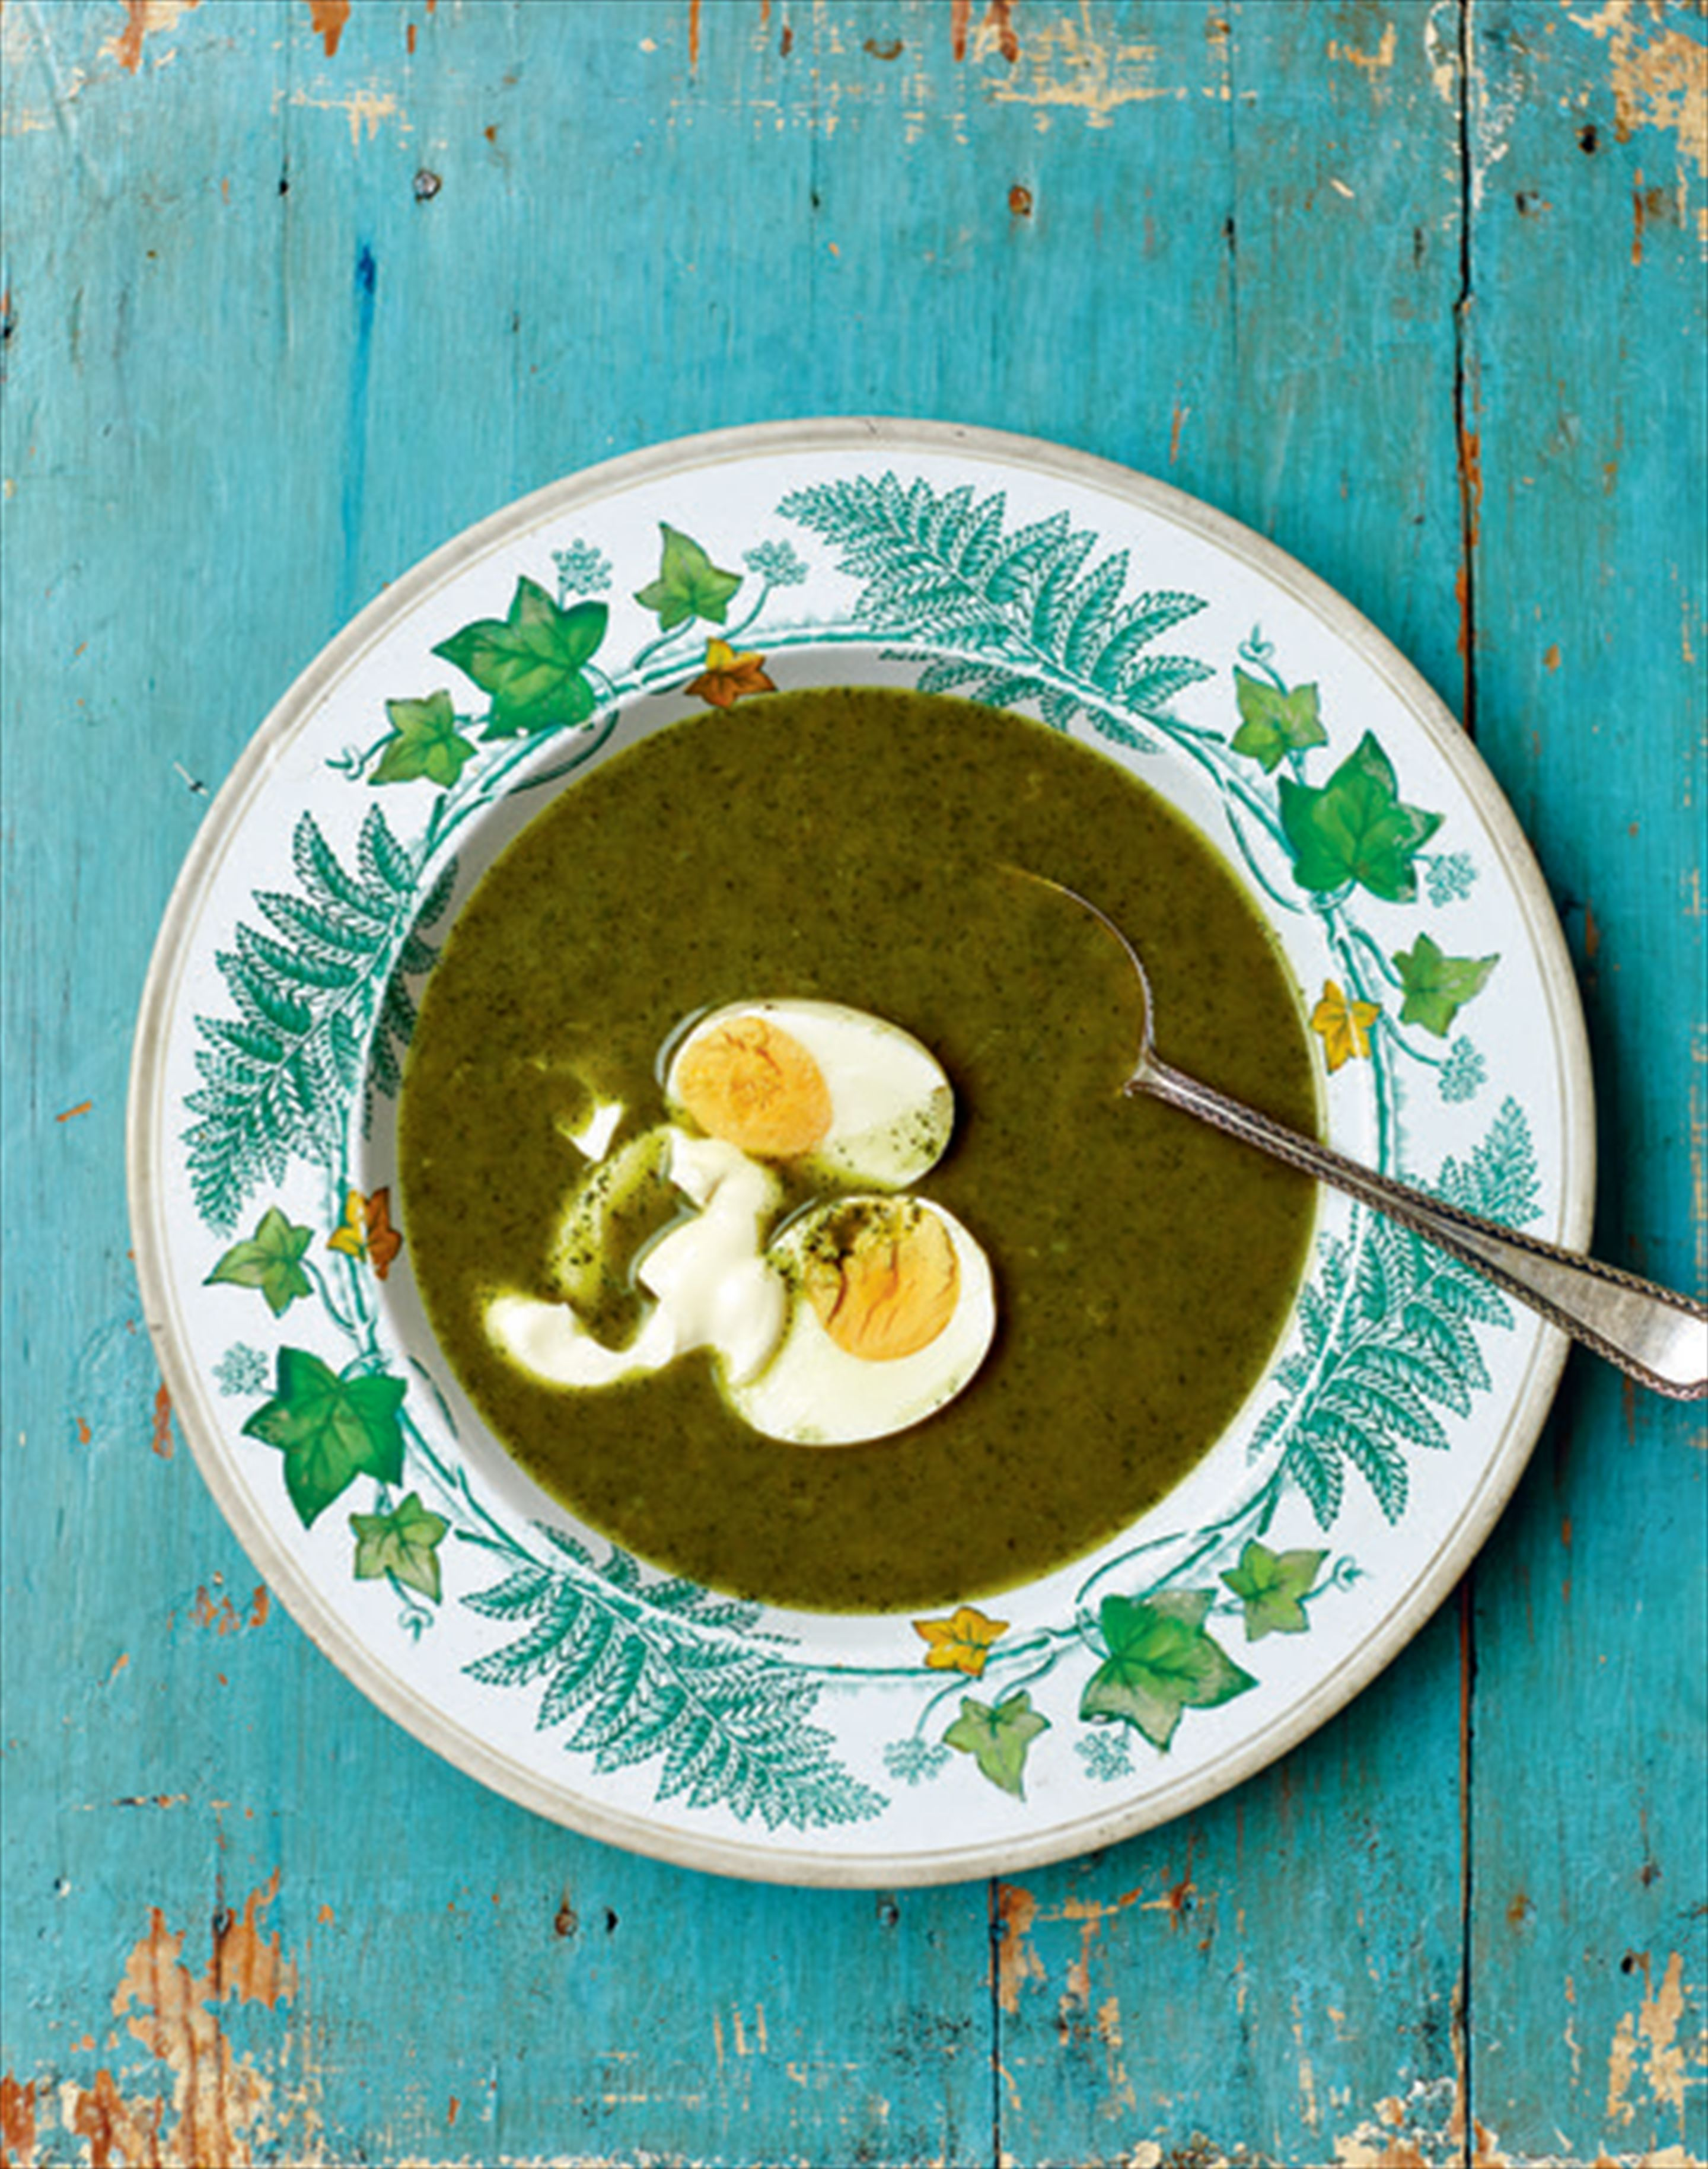 Foragers' soup with sorrel and young nettles